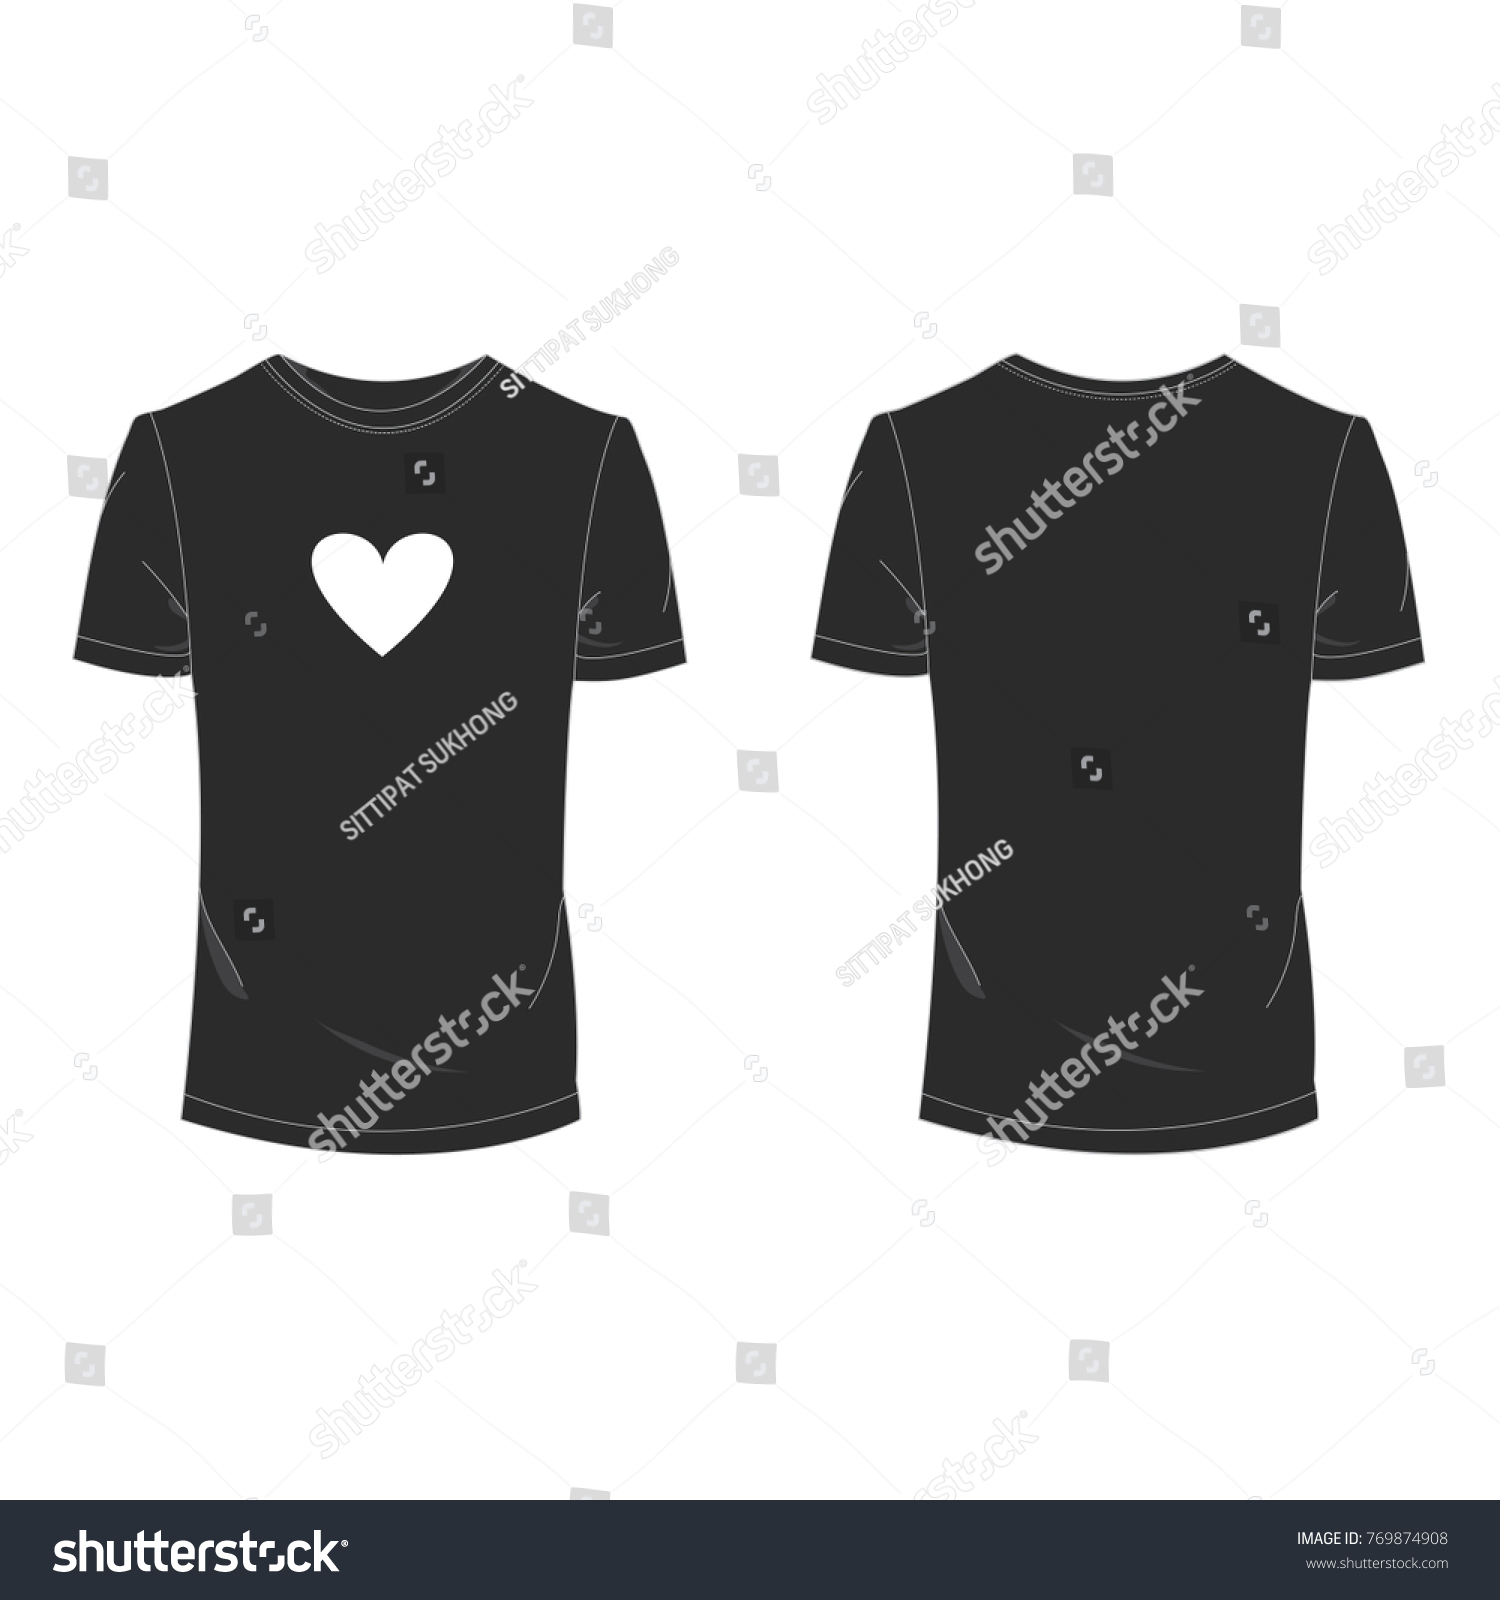 eece2fe32 Black T-shirt heart for Valentine day template using for fashion cloth  design and accessorie